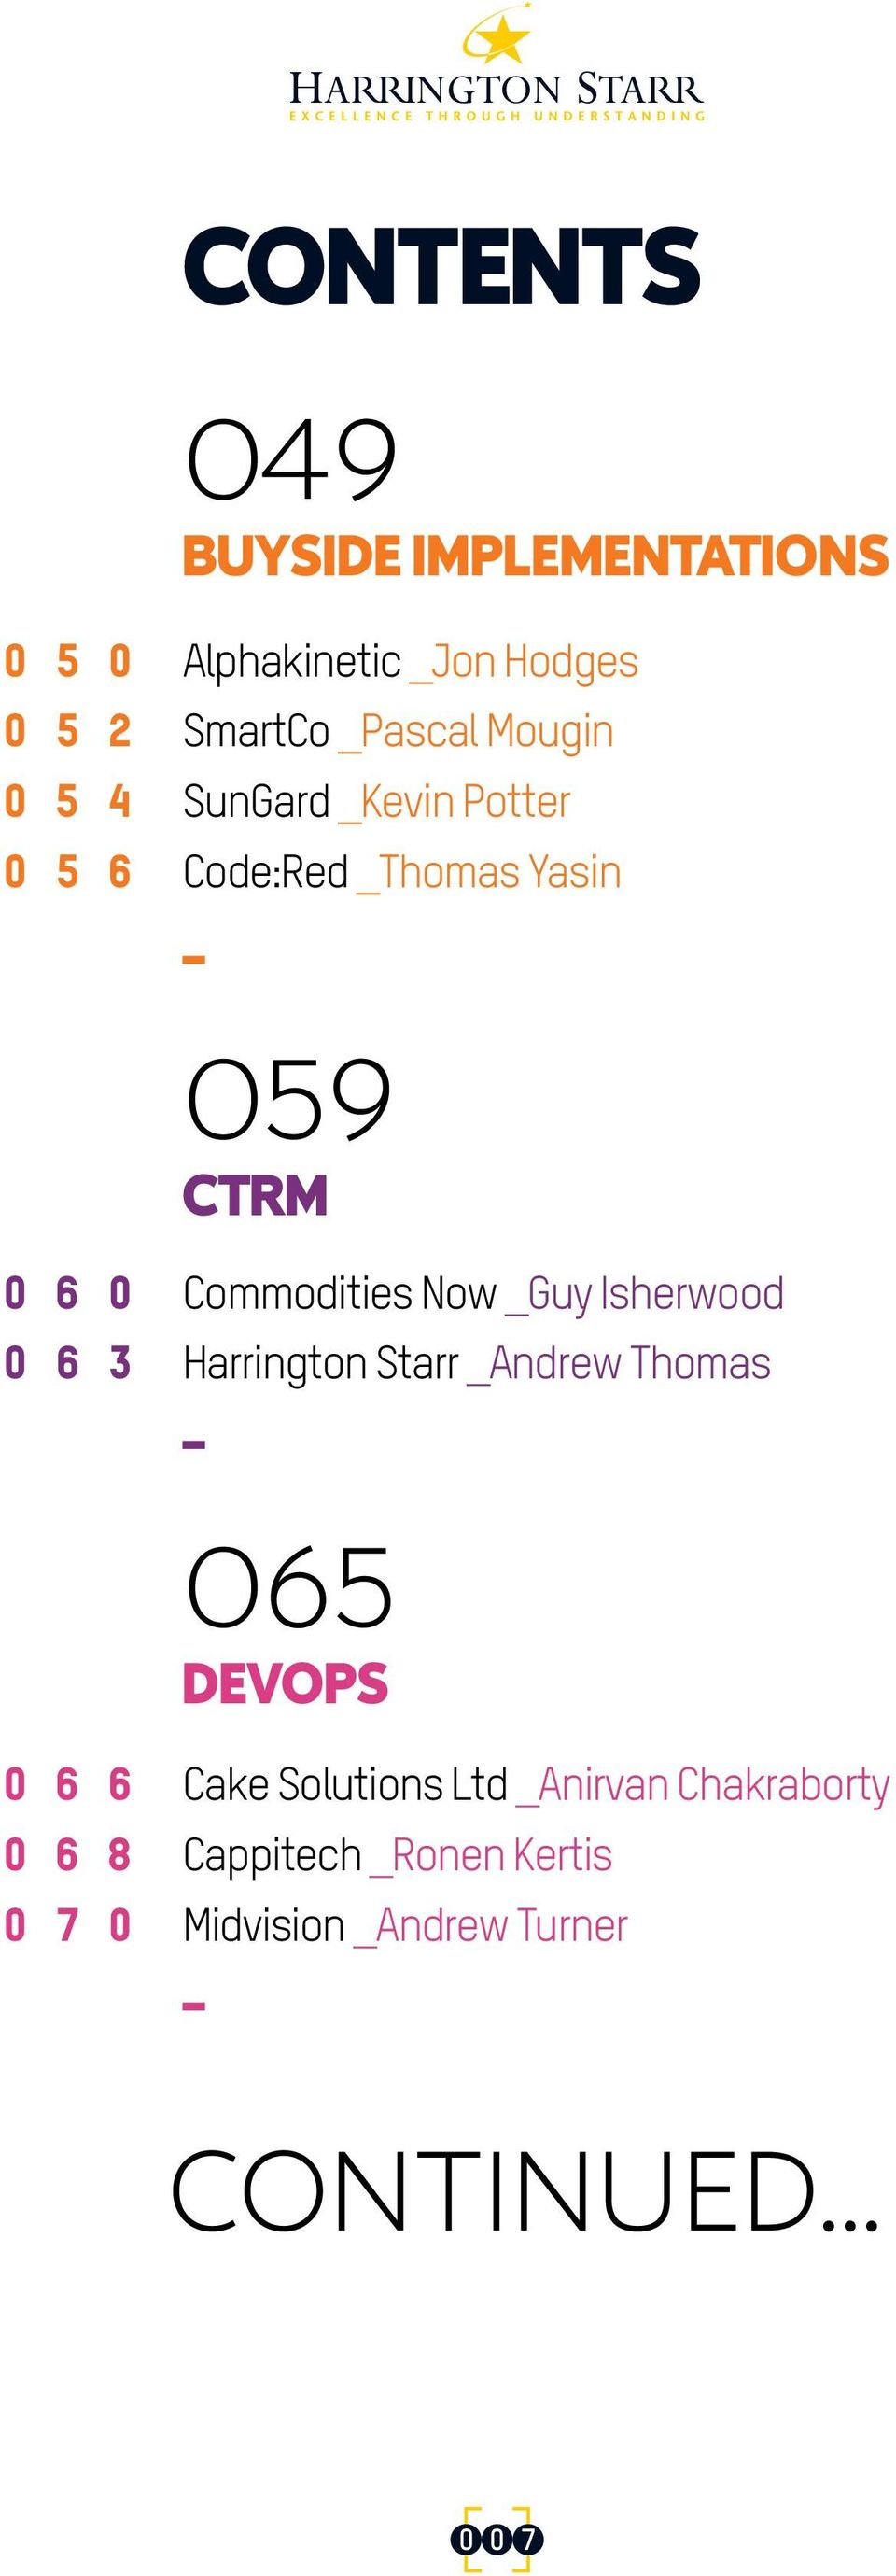 Commodities Now Guy Isherwood Harrington Starr Andrew Thomas 065 DEVOPS 0 6 6 0 6 8 0 7 0